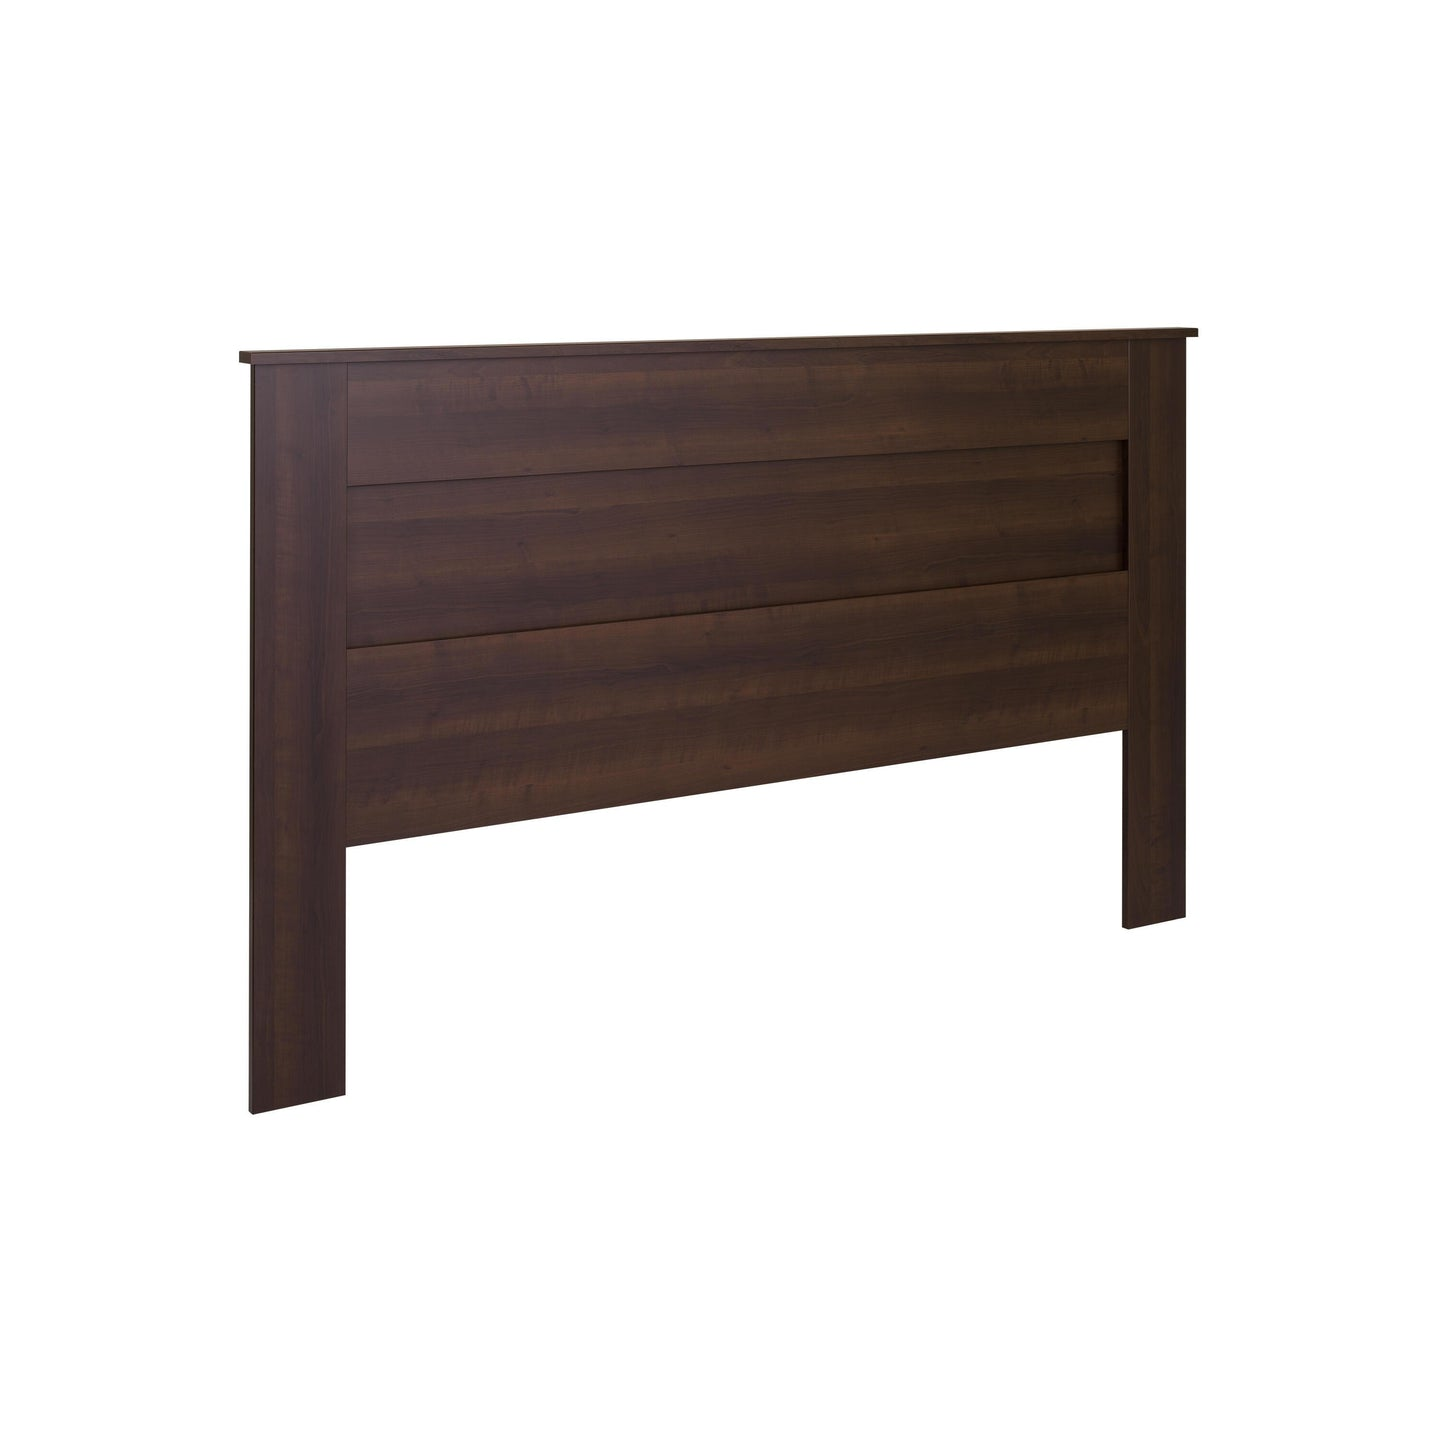 Prepac Espresso Wood Finish Eastern King Headboard